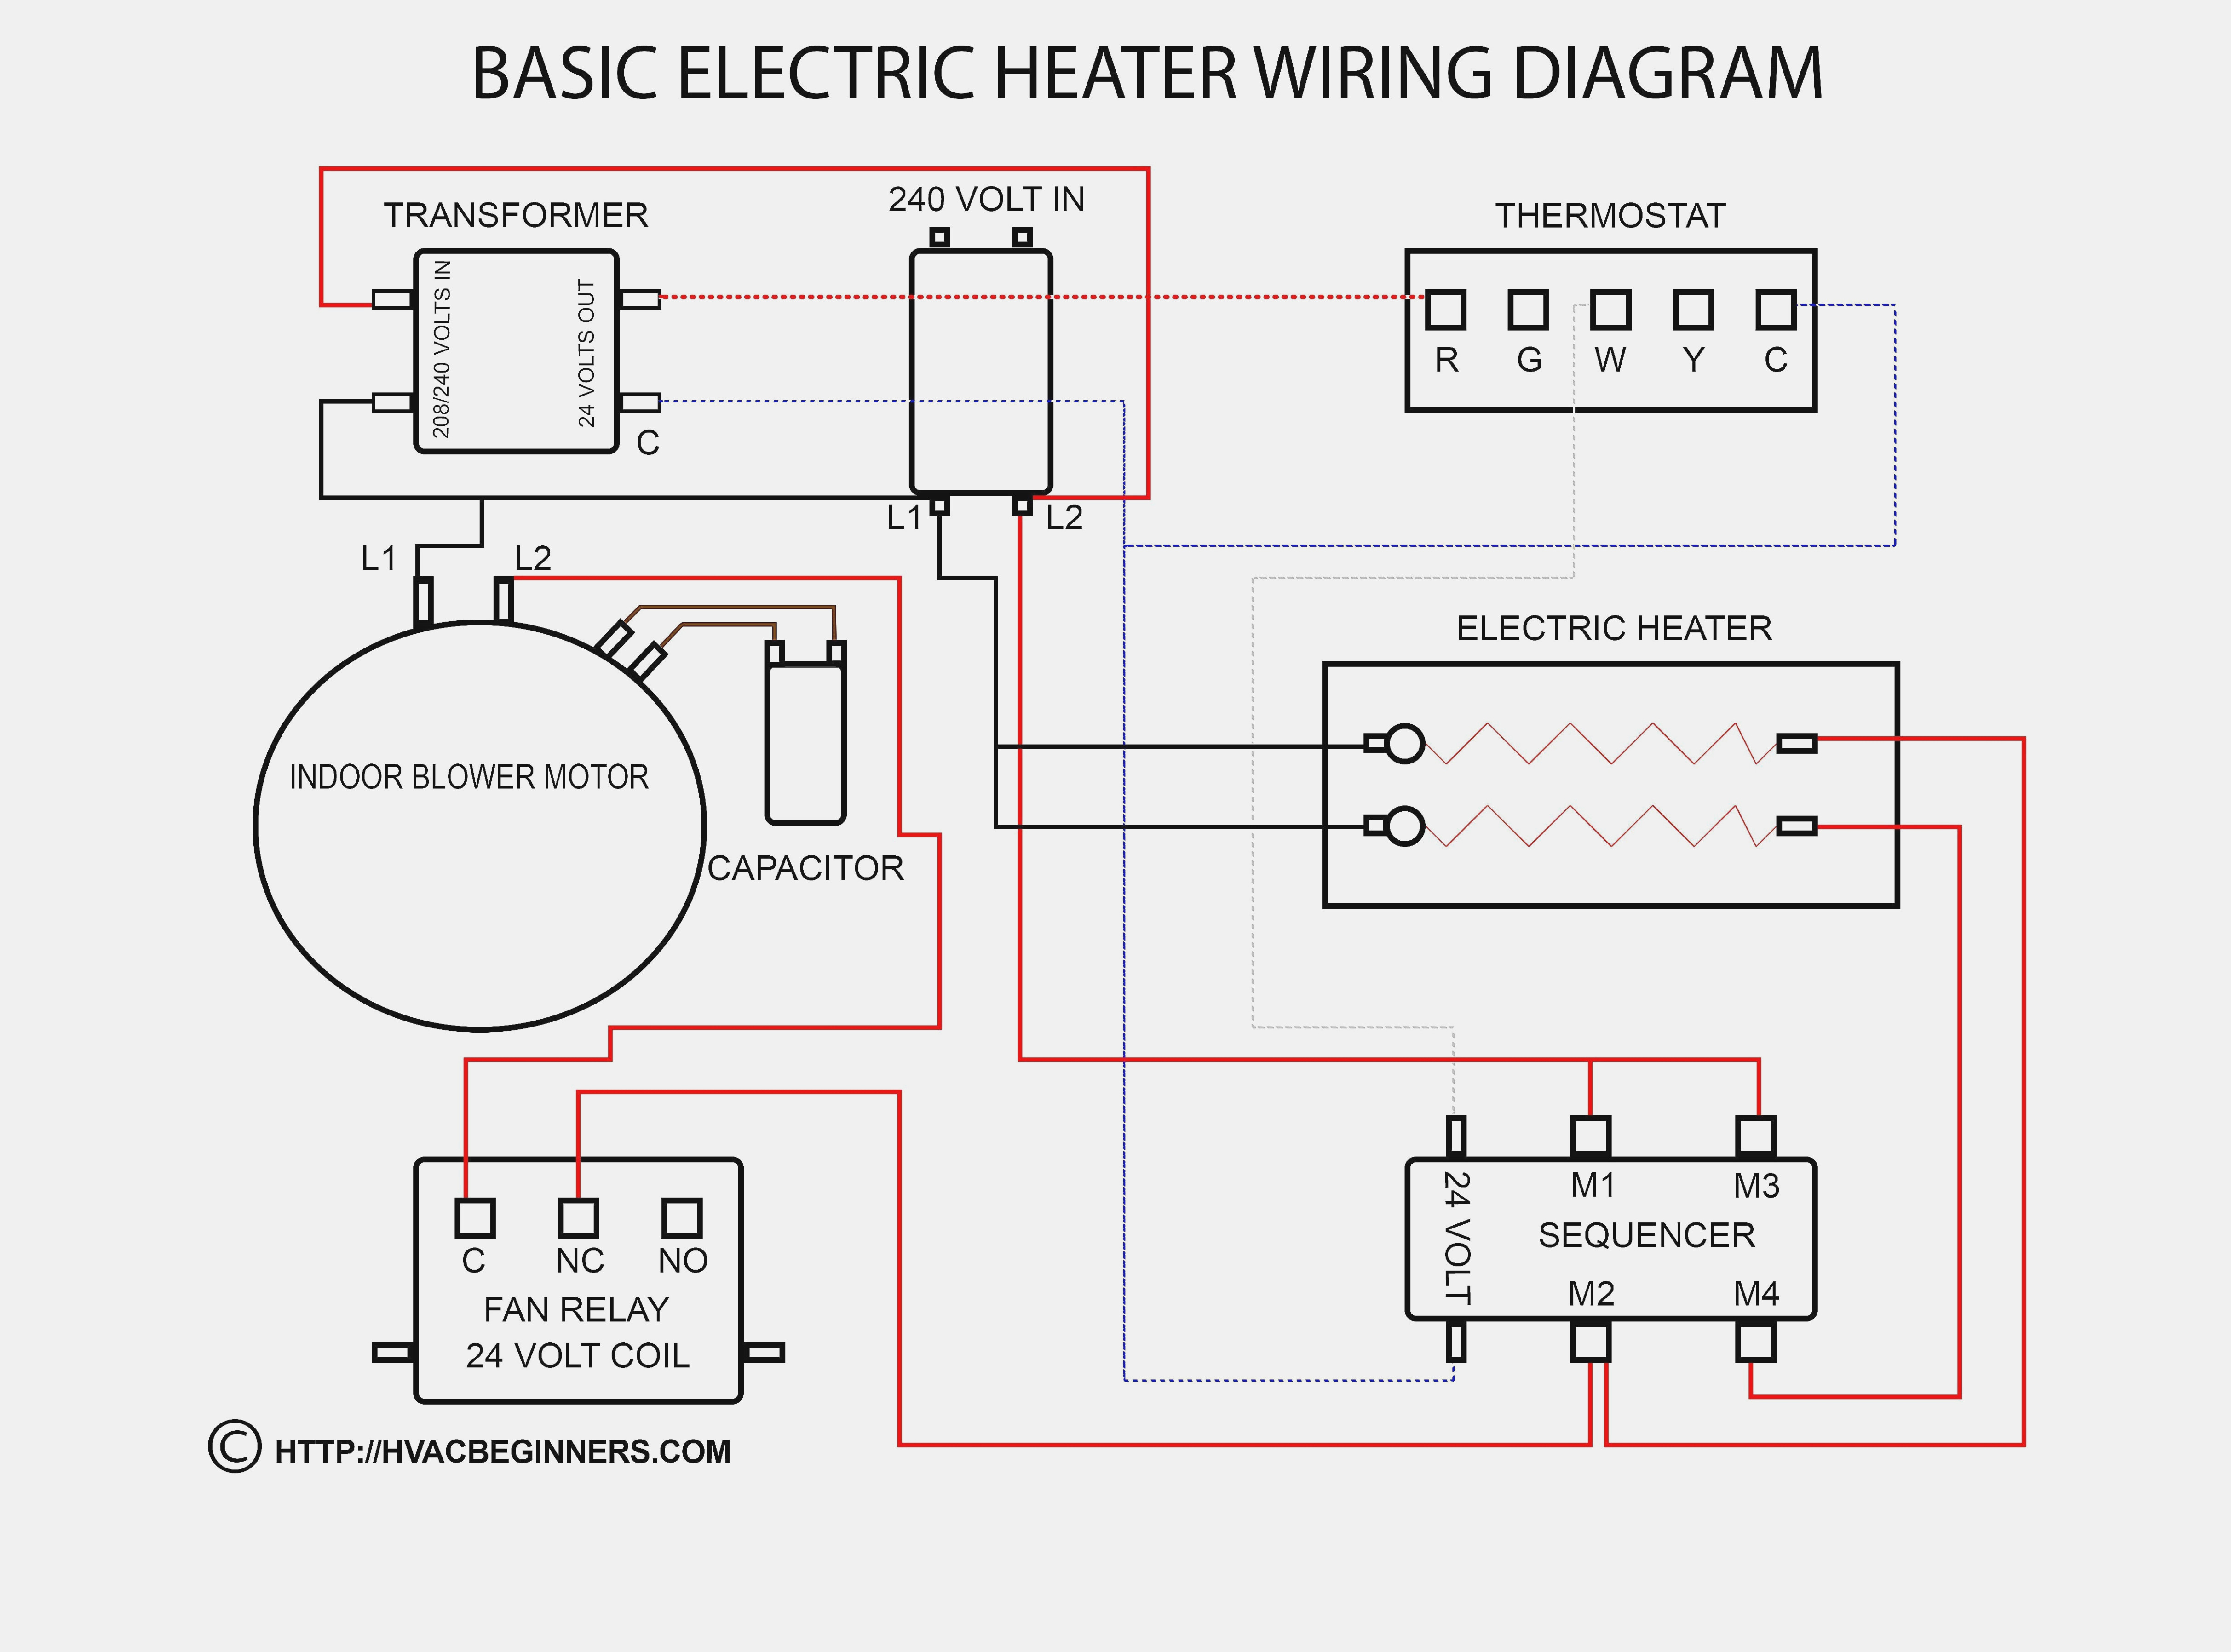 Nest Thermostat Wiring Diagram | Wiring Library - Millivolt Heater Wiring Diagram For Nest Thermostat